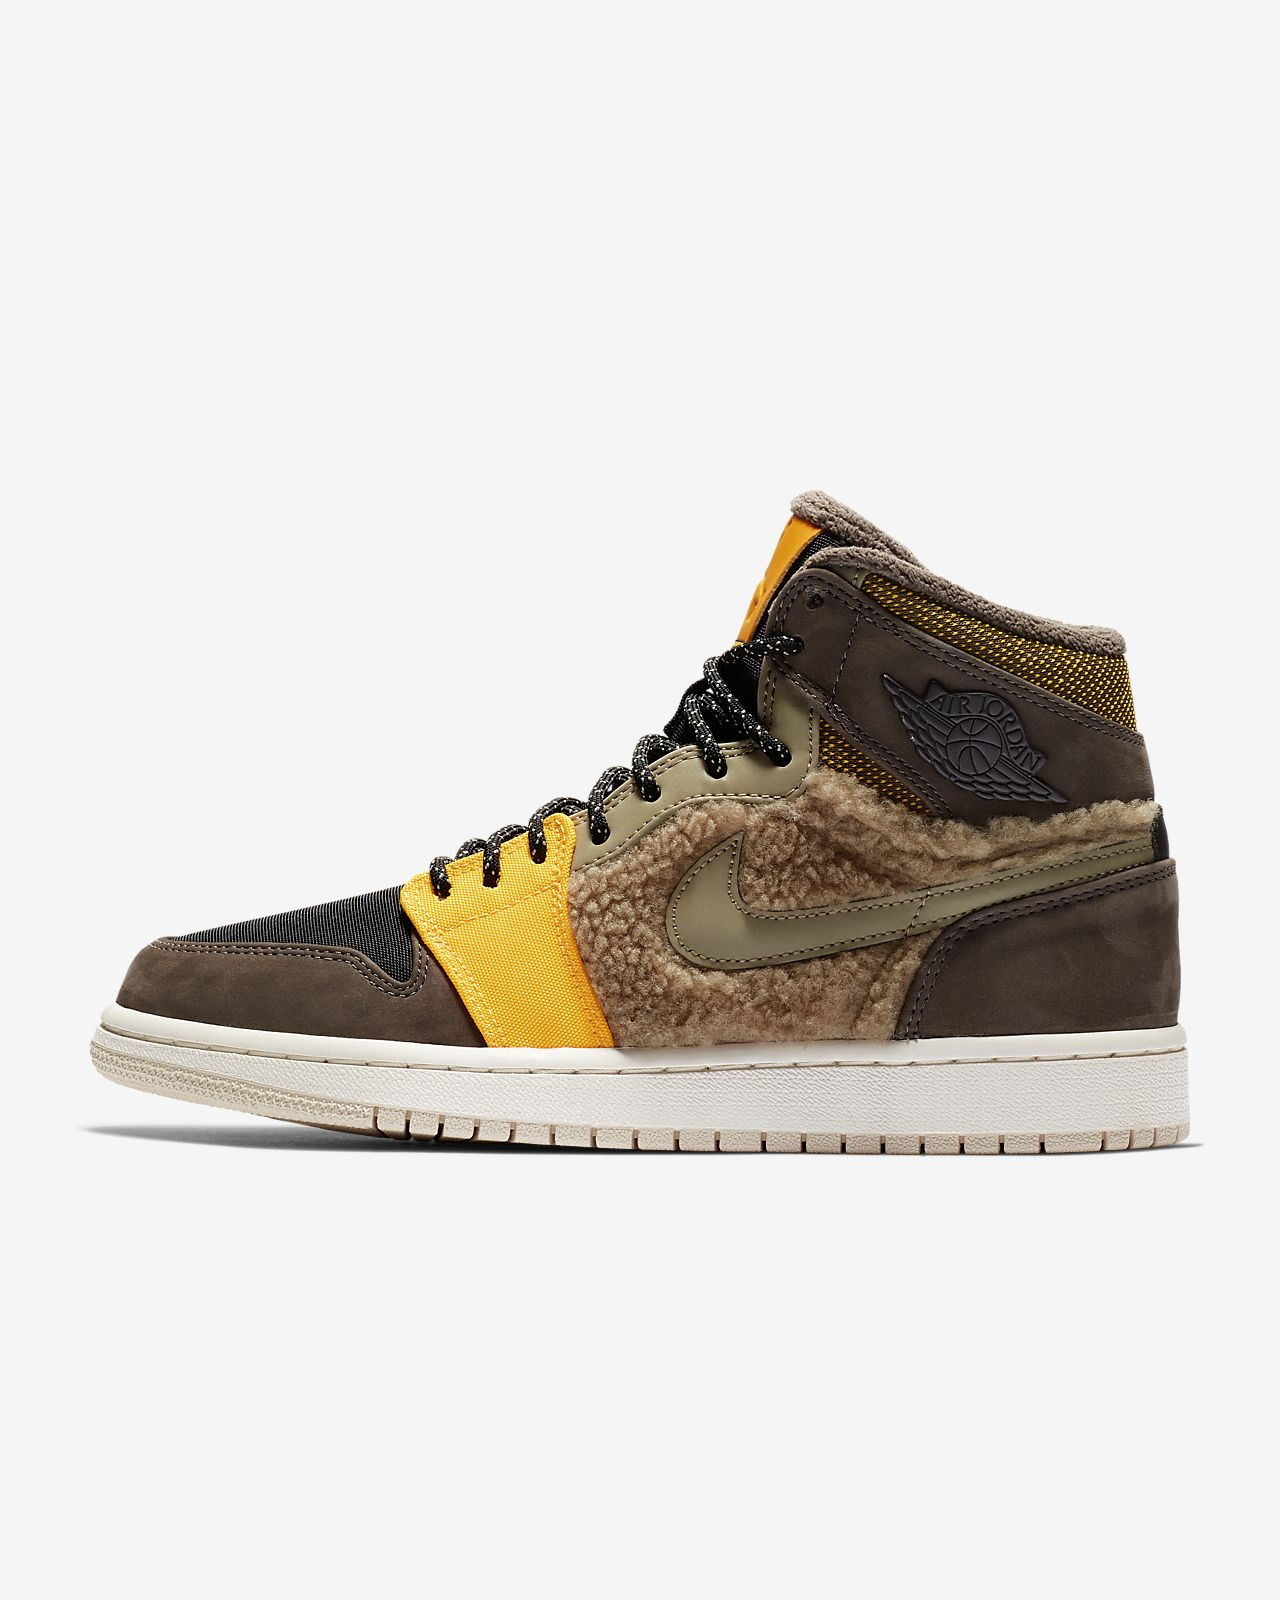 0524dcf794c211 Air Jordan 1 Retro High Premium Utility Women s Shoe. Nike.com